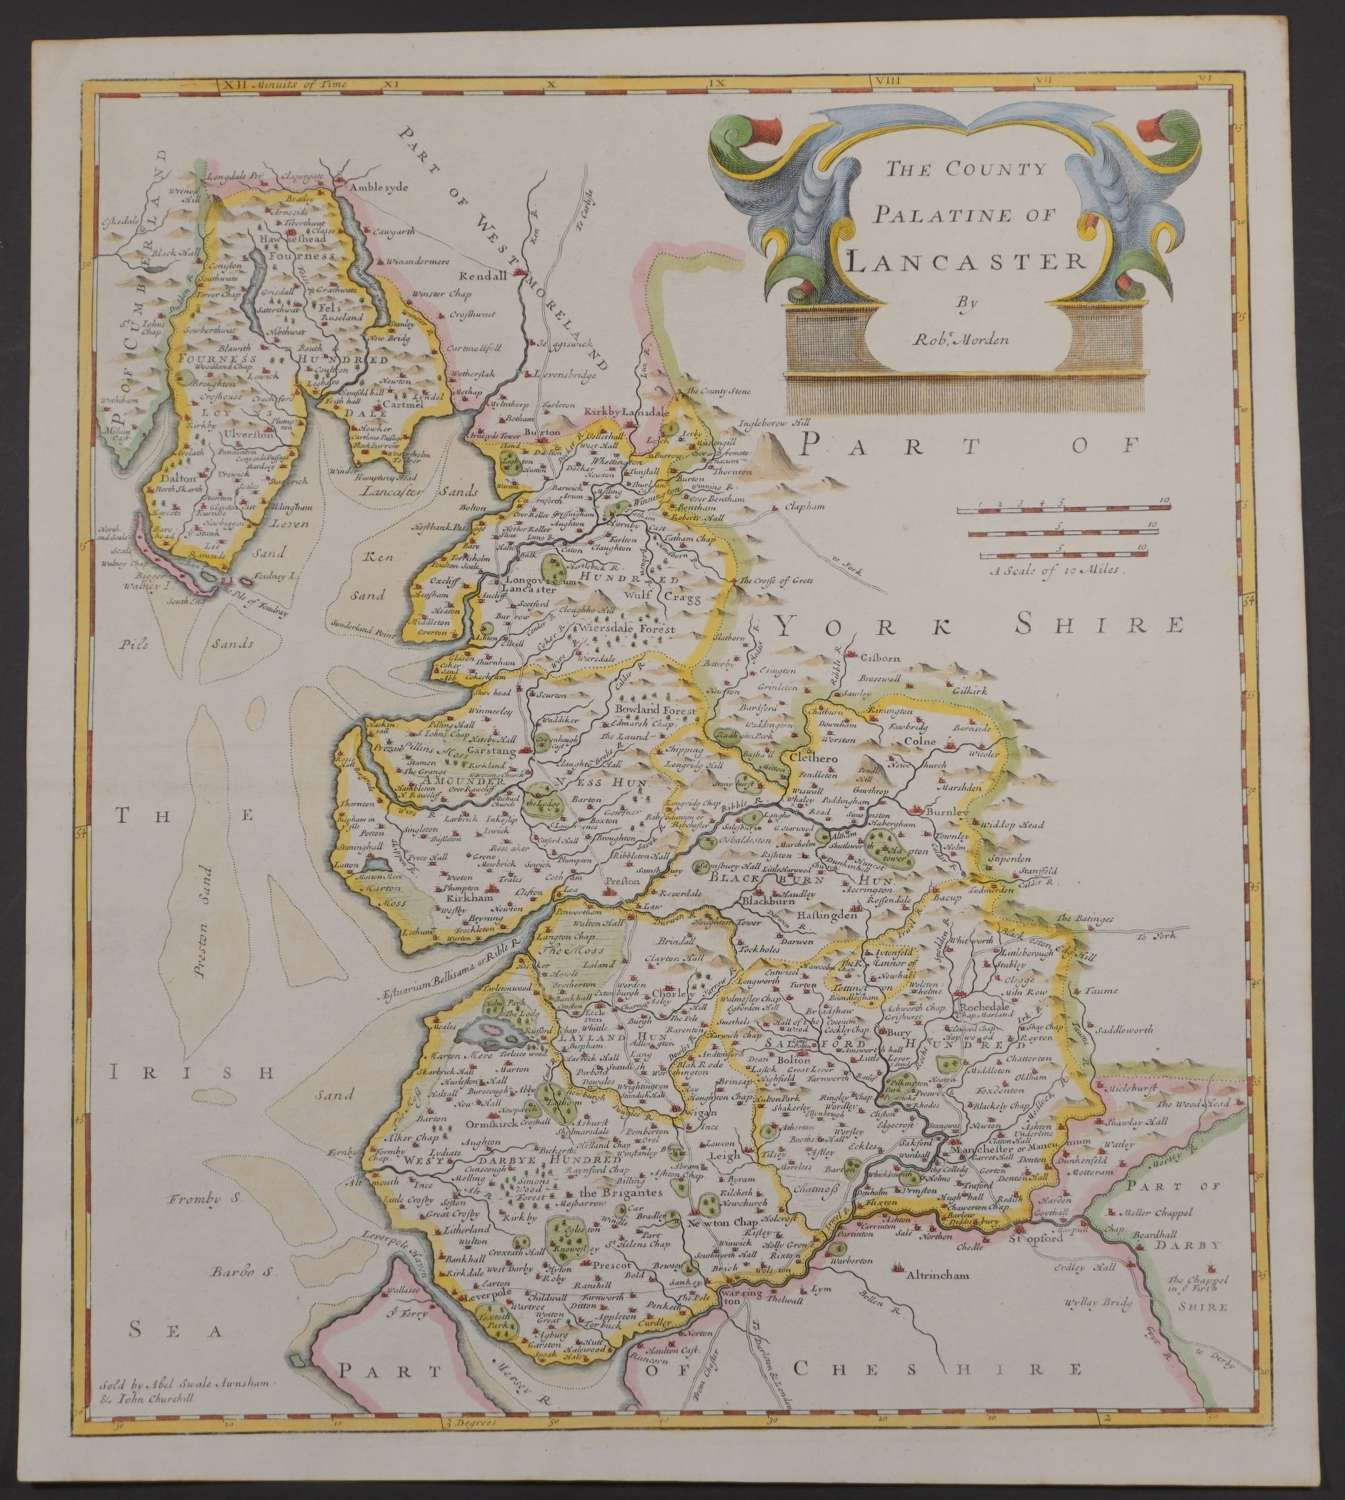 The County Palatine of Lancaster (Lancashire) by Robert Morden